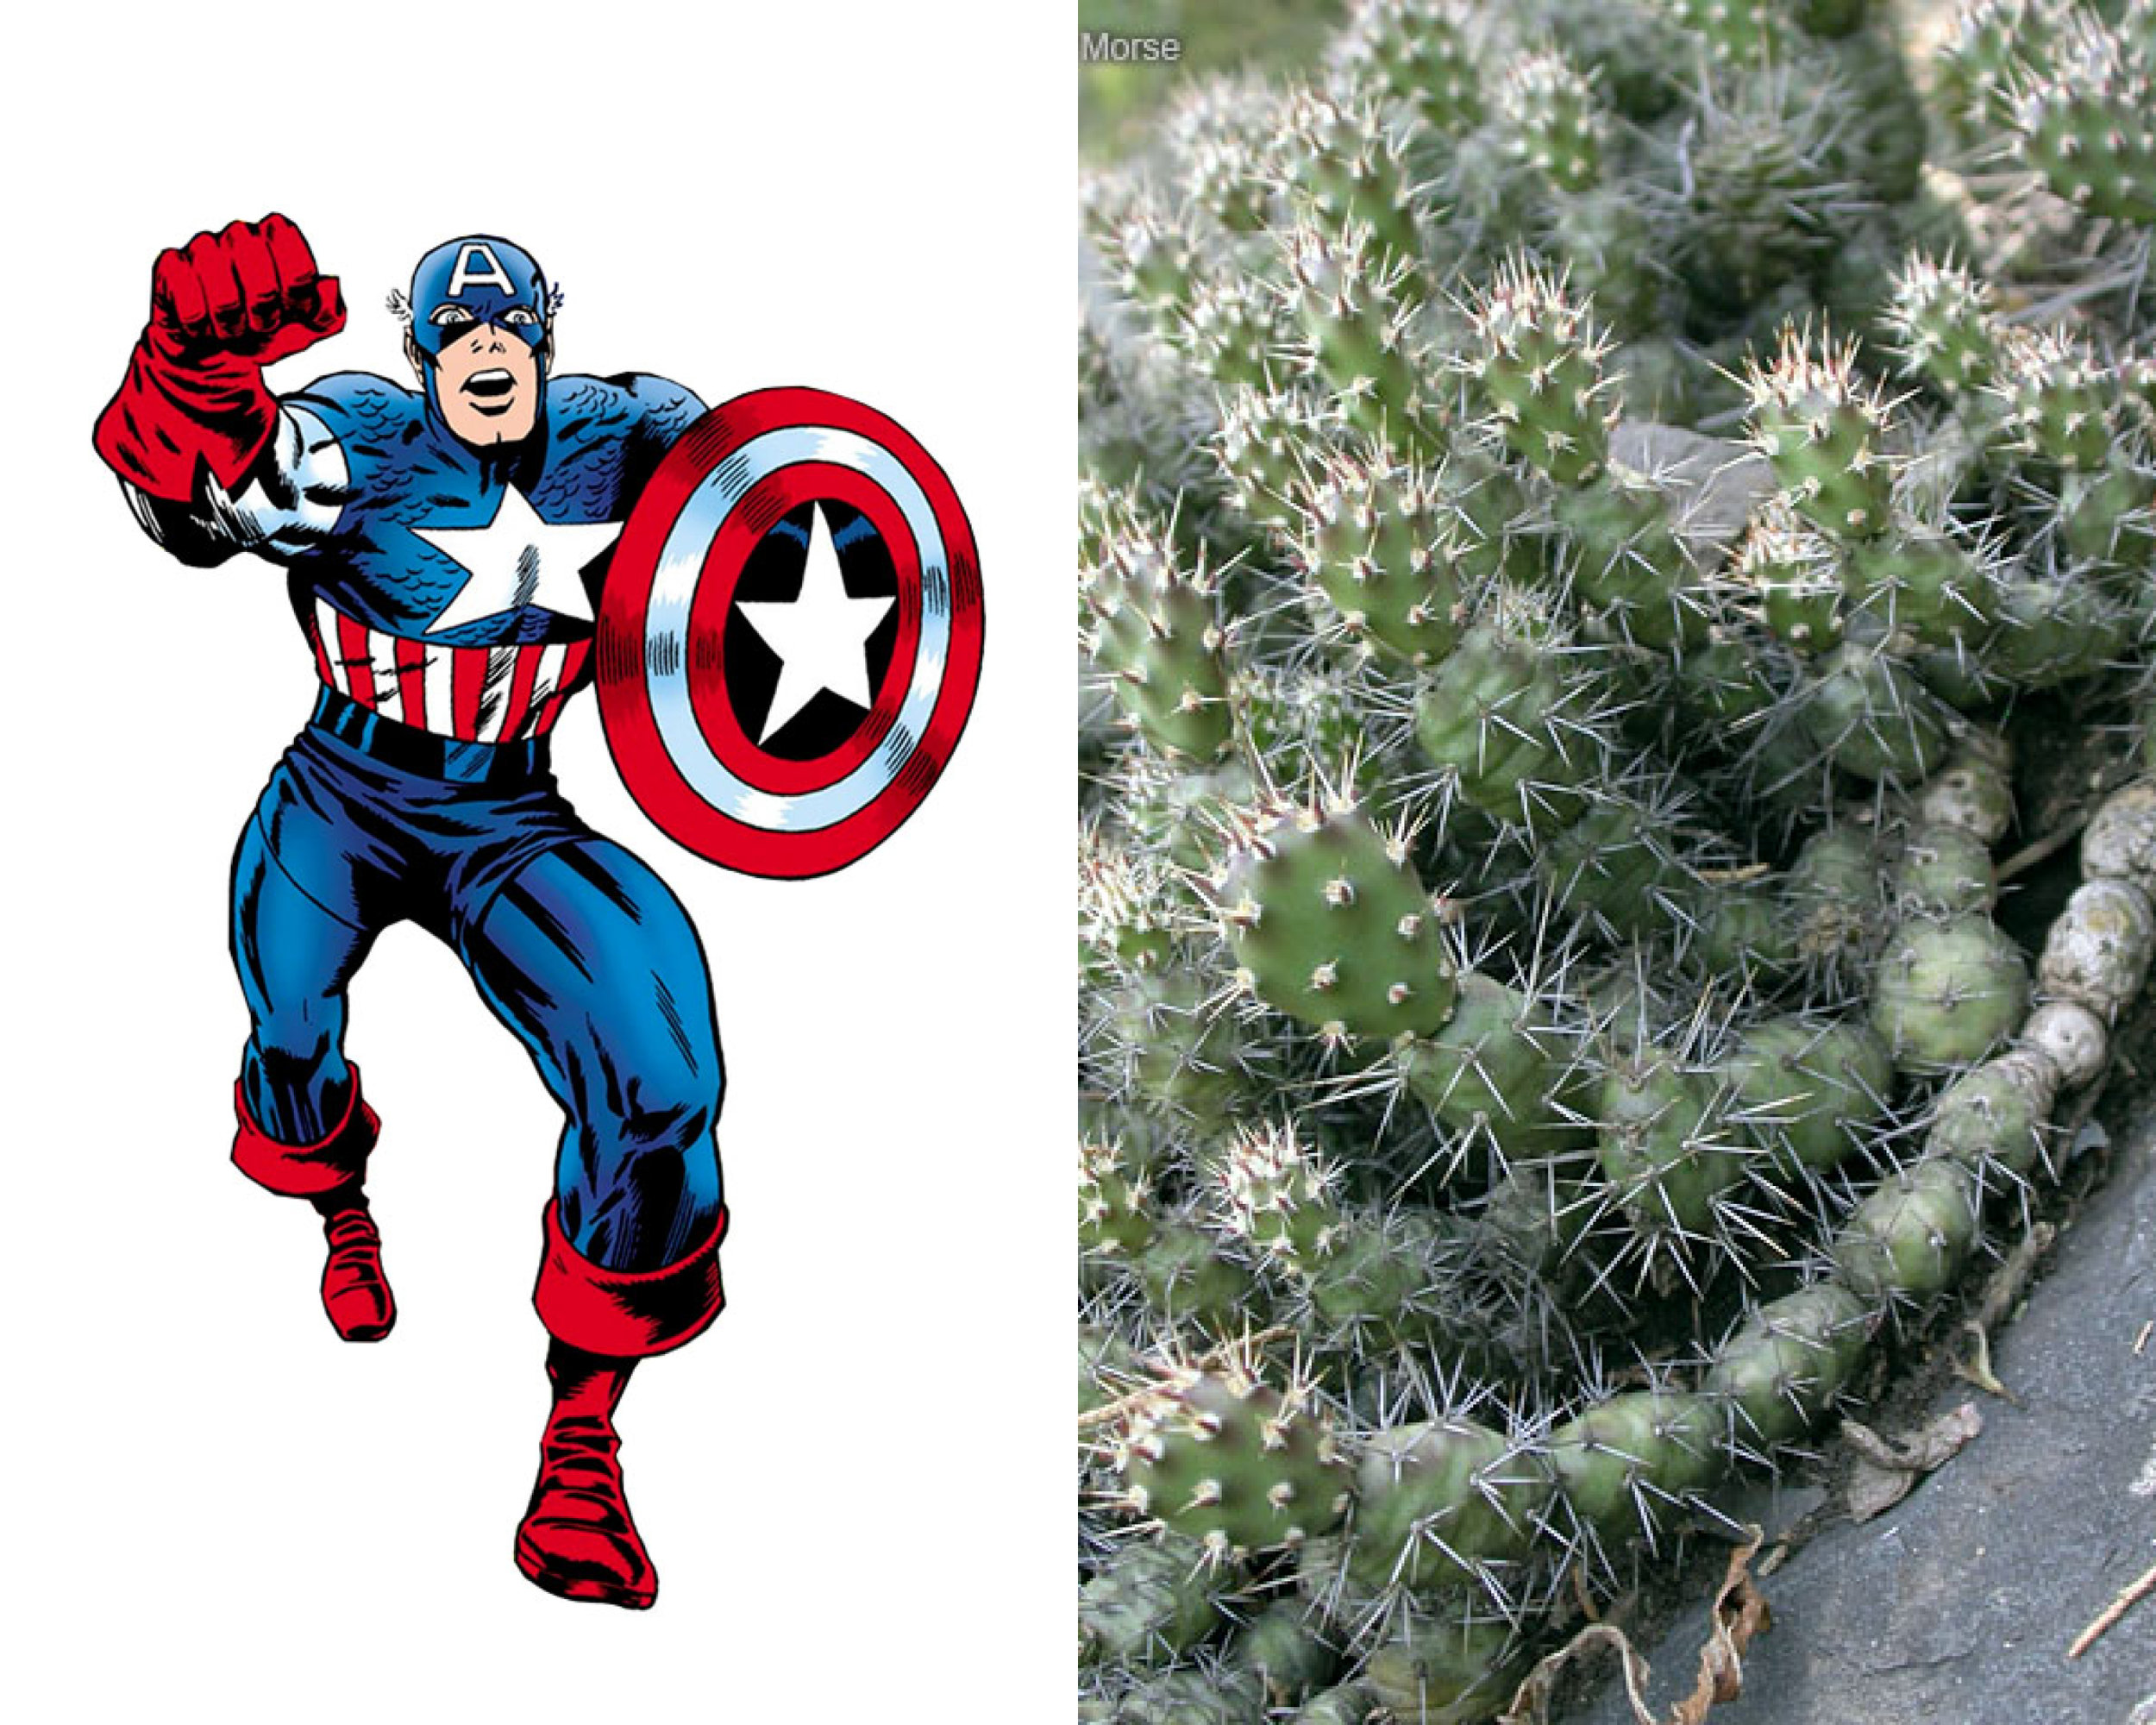 Captain America - Brittle Prickly-Pear Cactus (Opuntia fragilis)